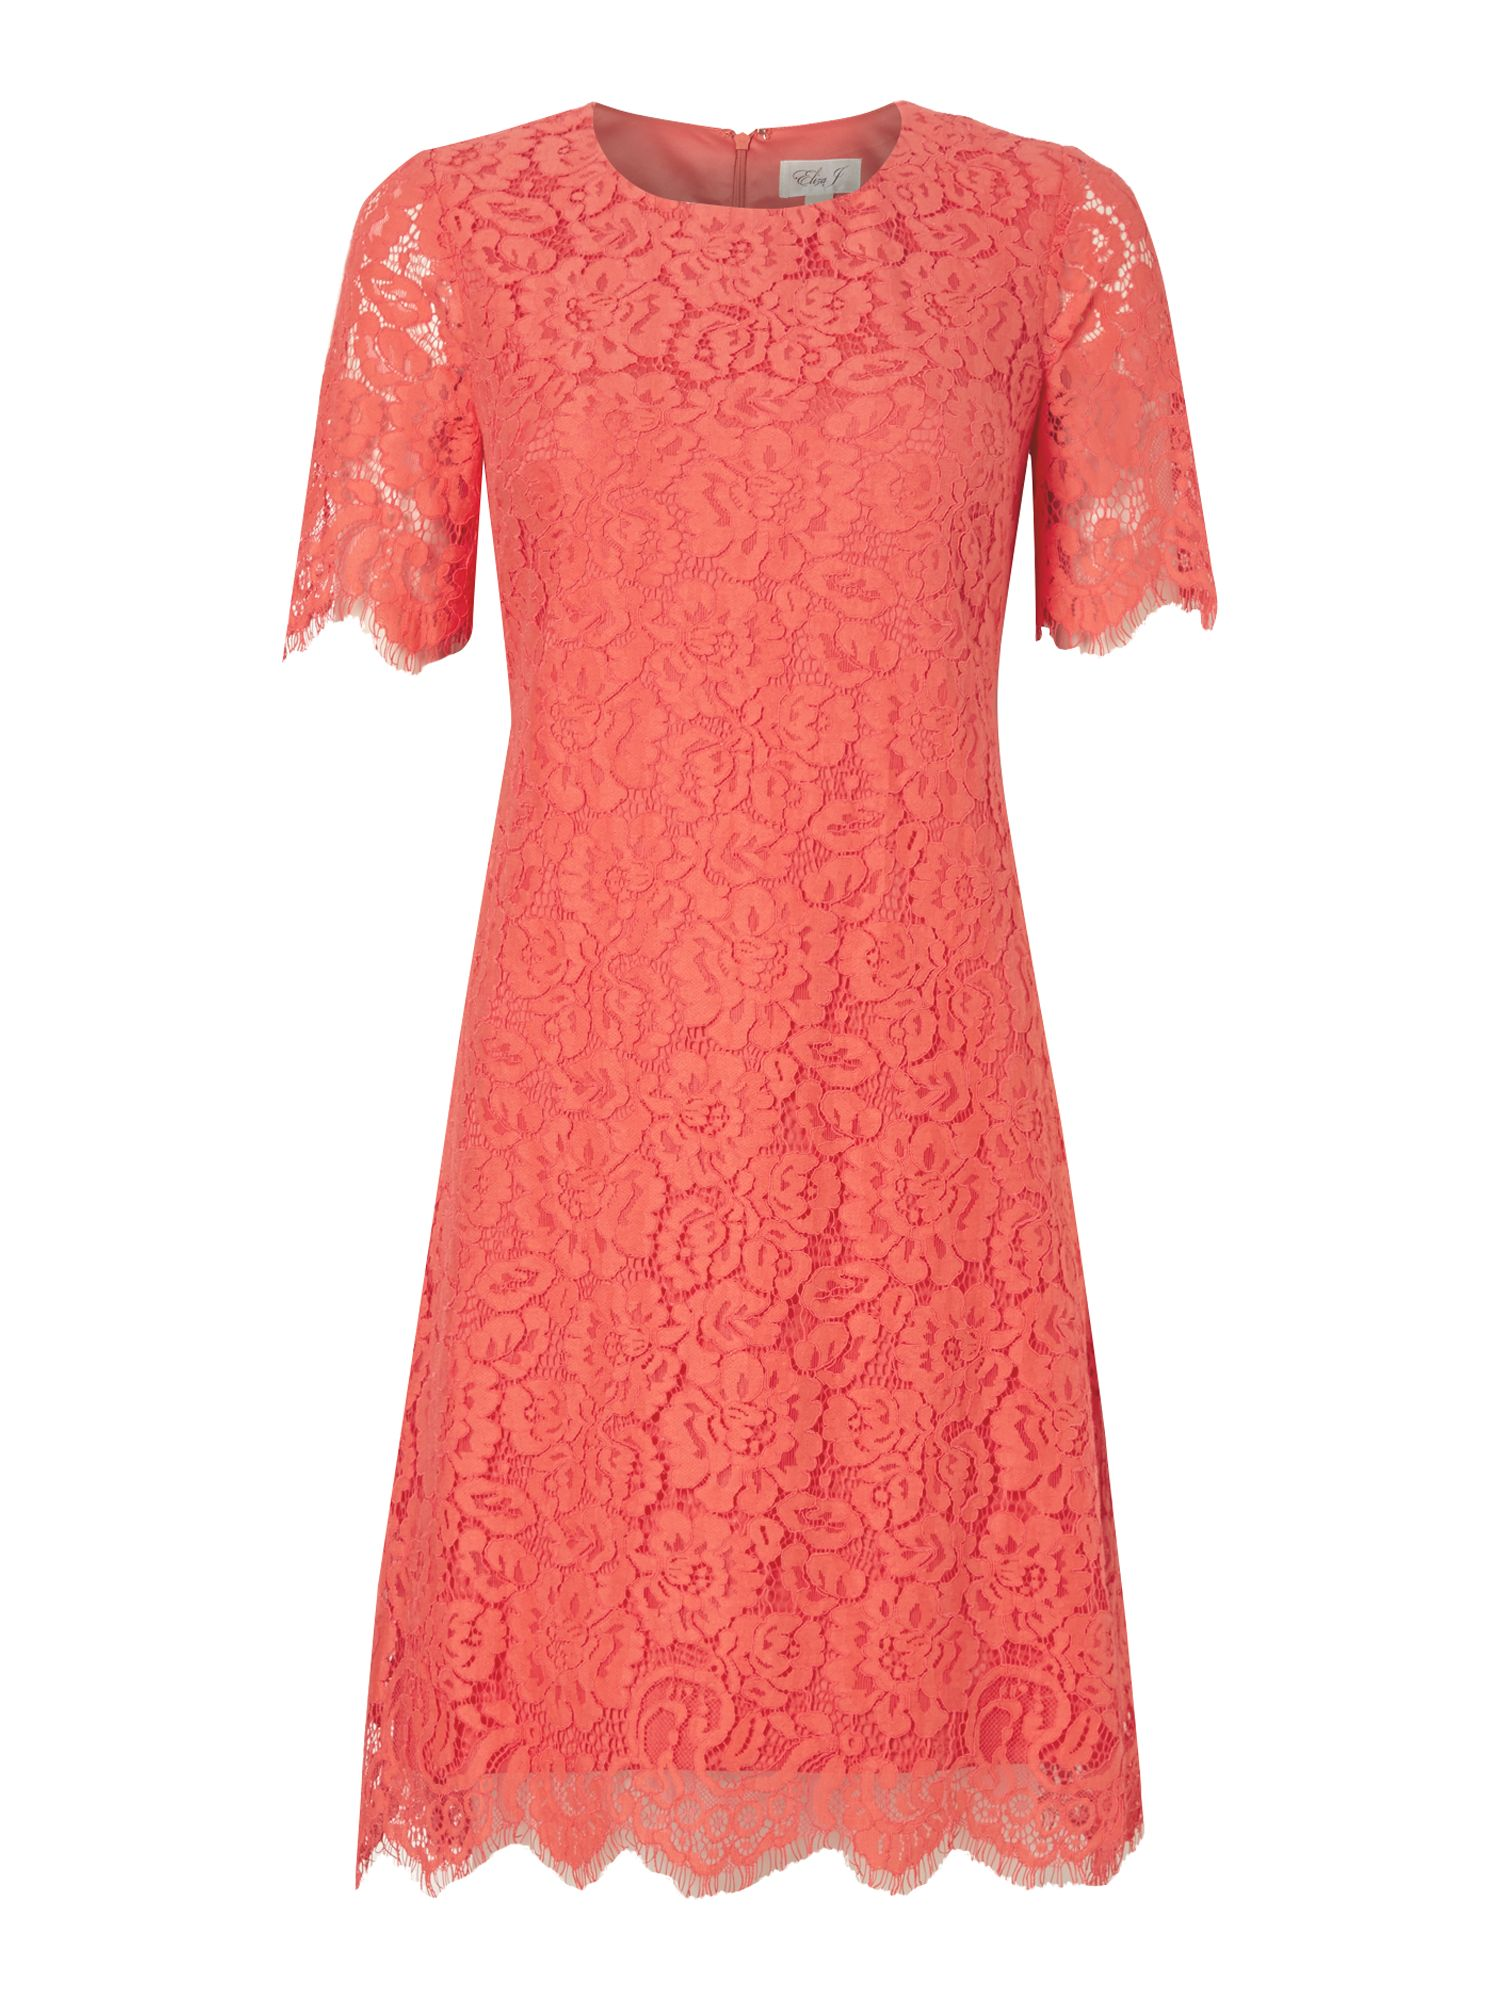 Eliza J Three quarter sleeve floral lace dress, Coral